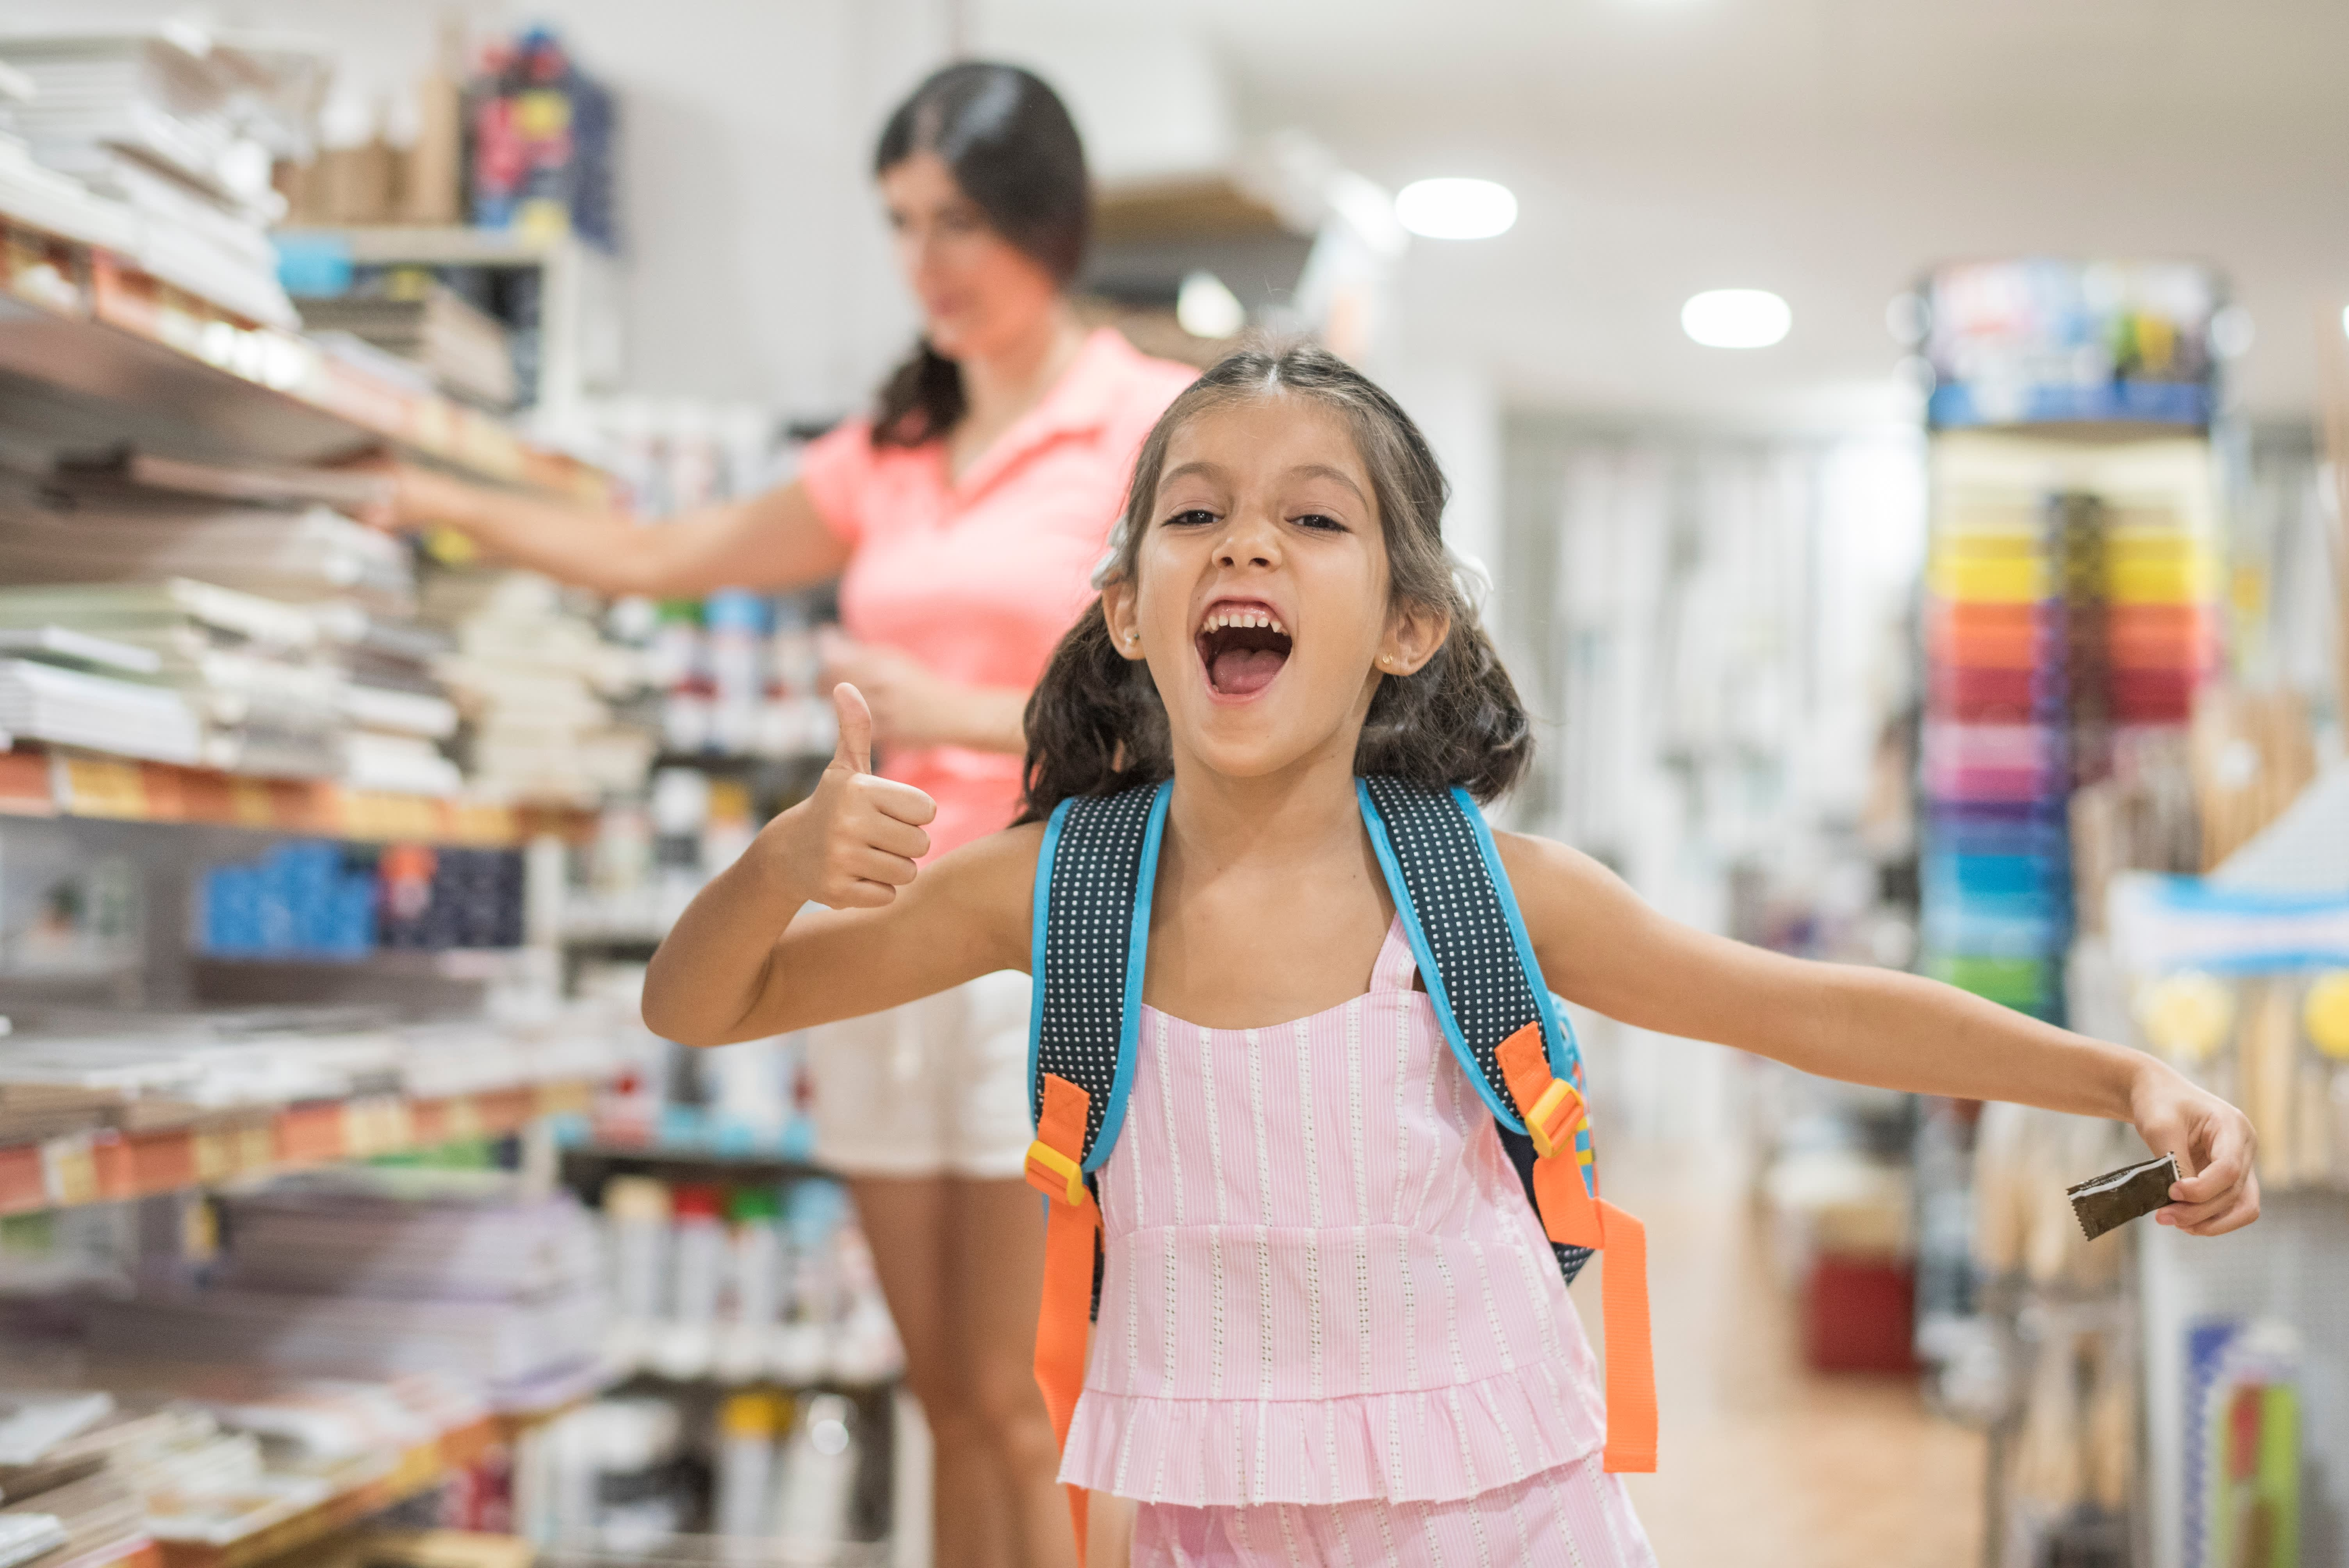 Americans spend almost $700 on back-to-school shopping—here are 5 ways to save